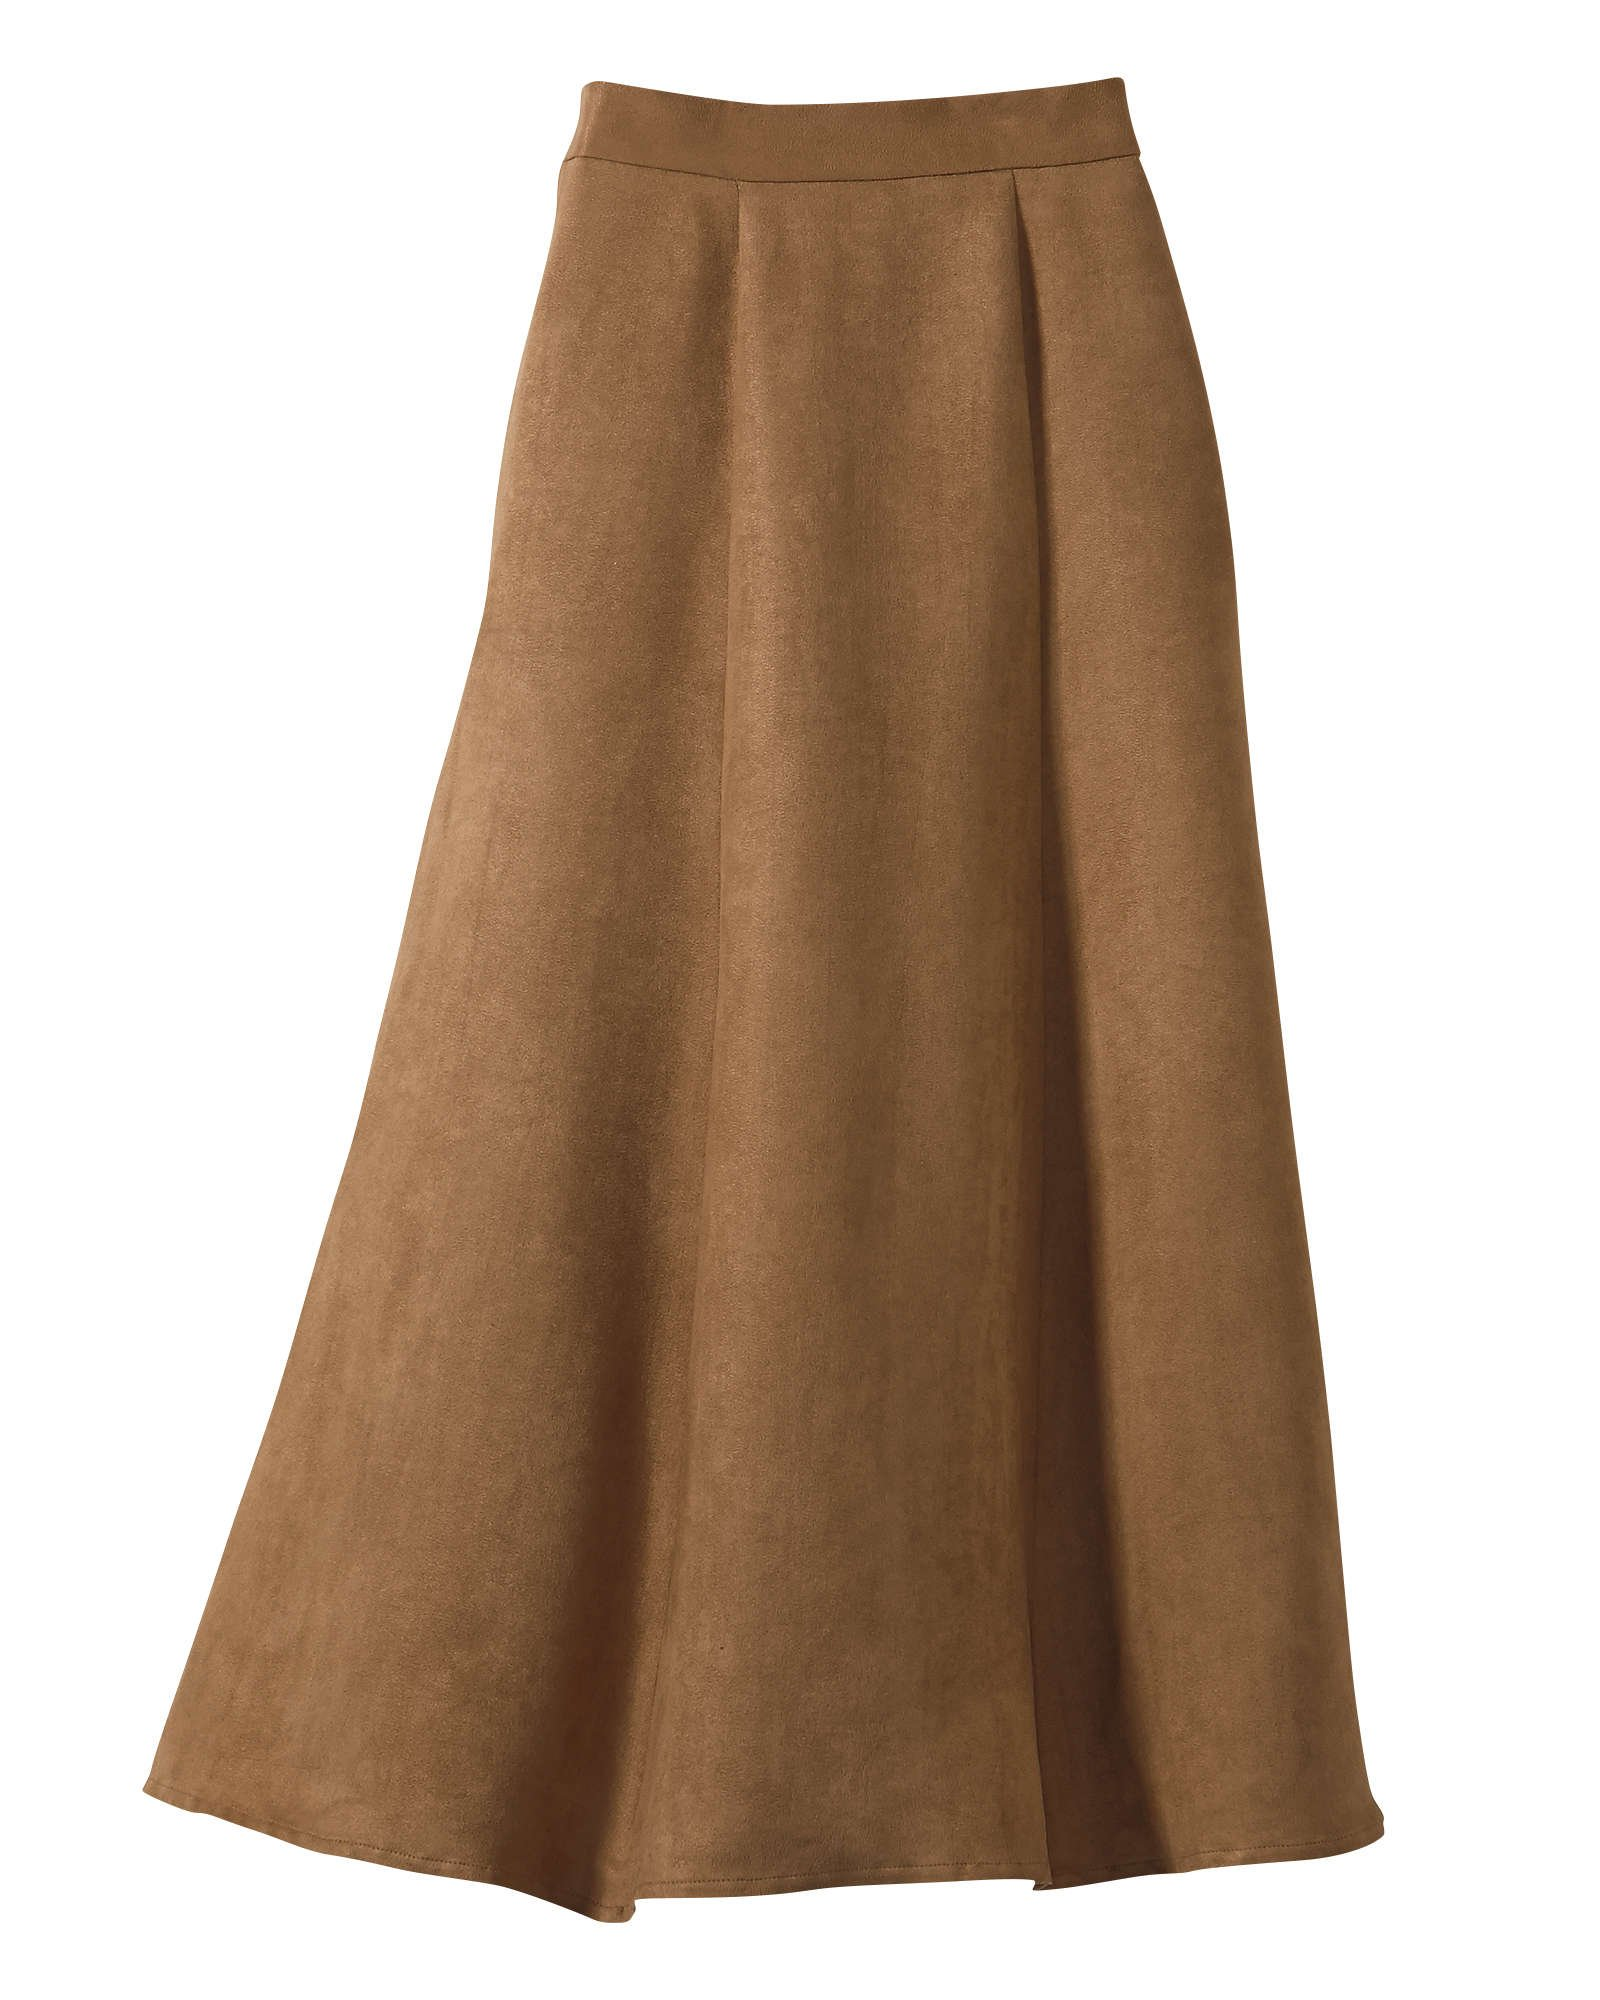 National Poly Suede Skirt, Camel, Petite Large